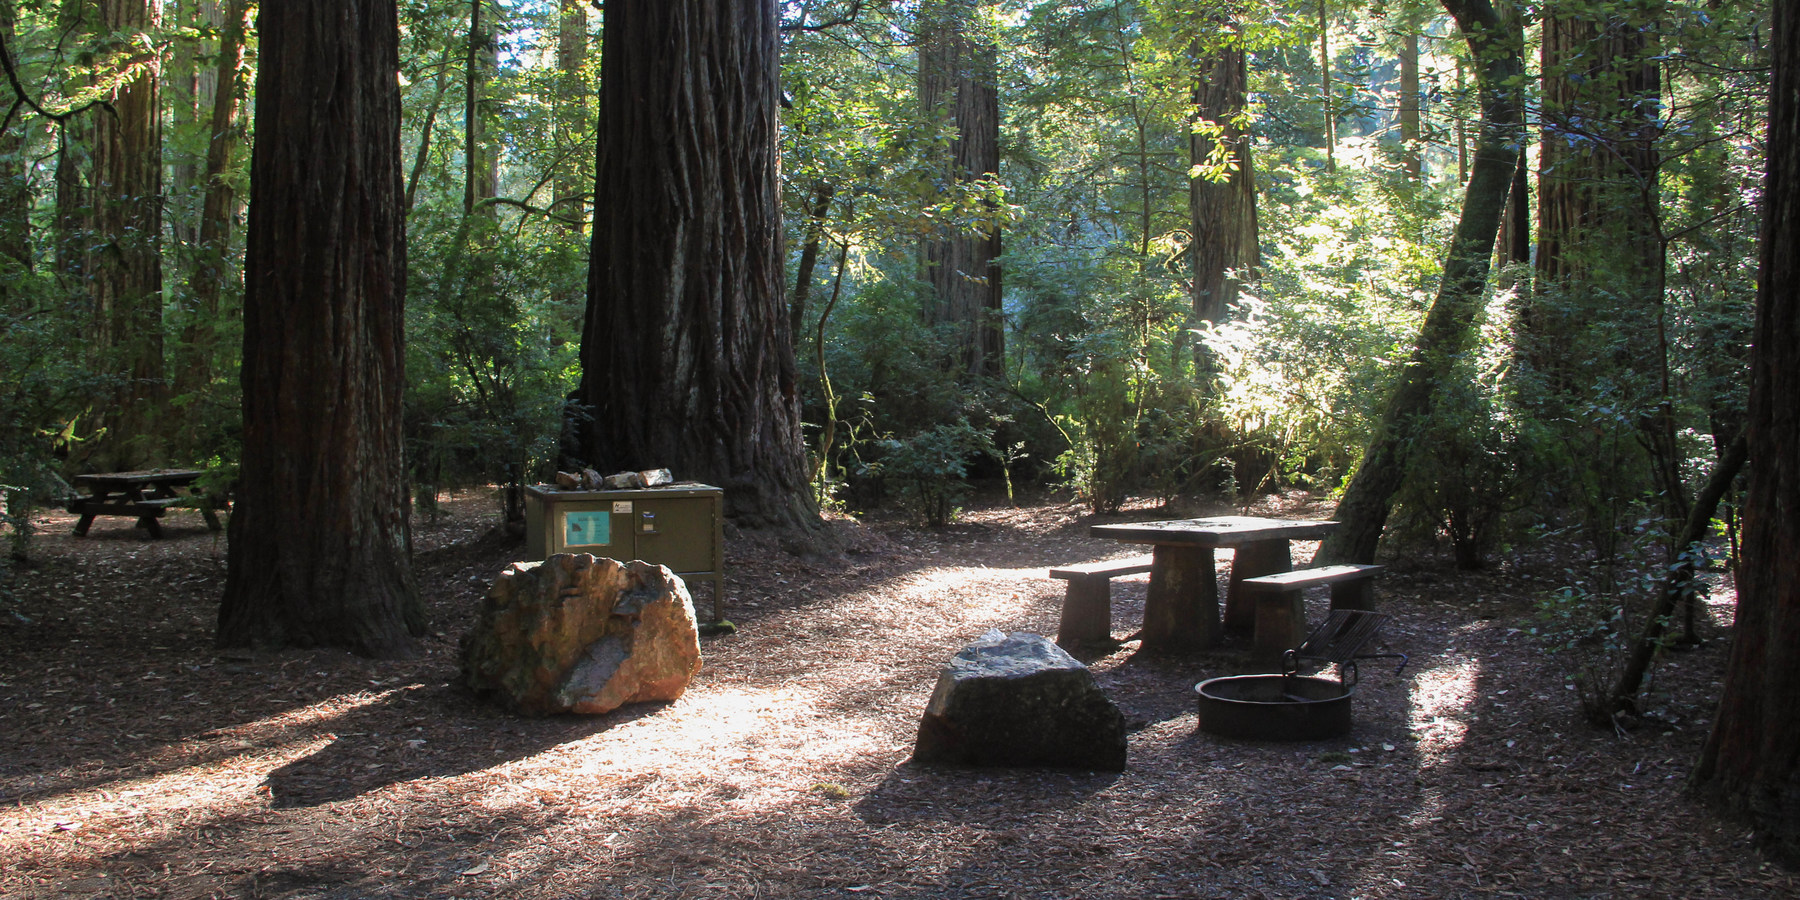 Typical campsite beneath the redwoods (Sequoia sempervirens) in Jedediah  Smith Campground.